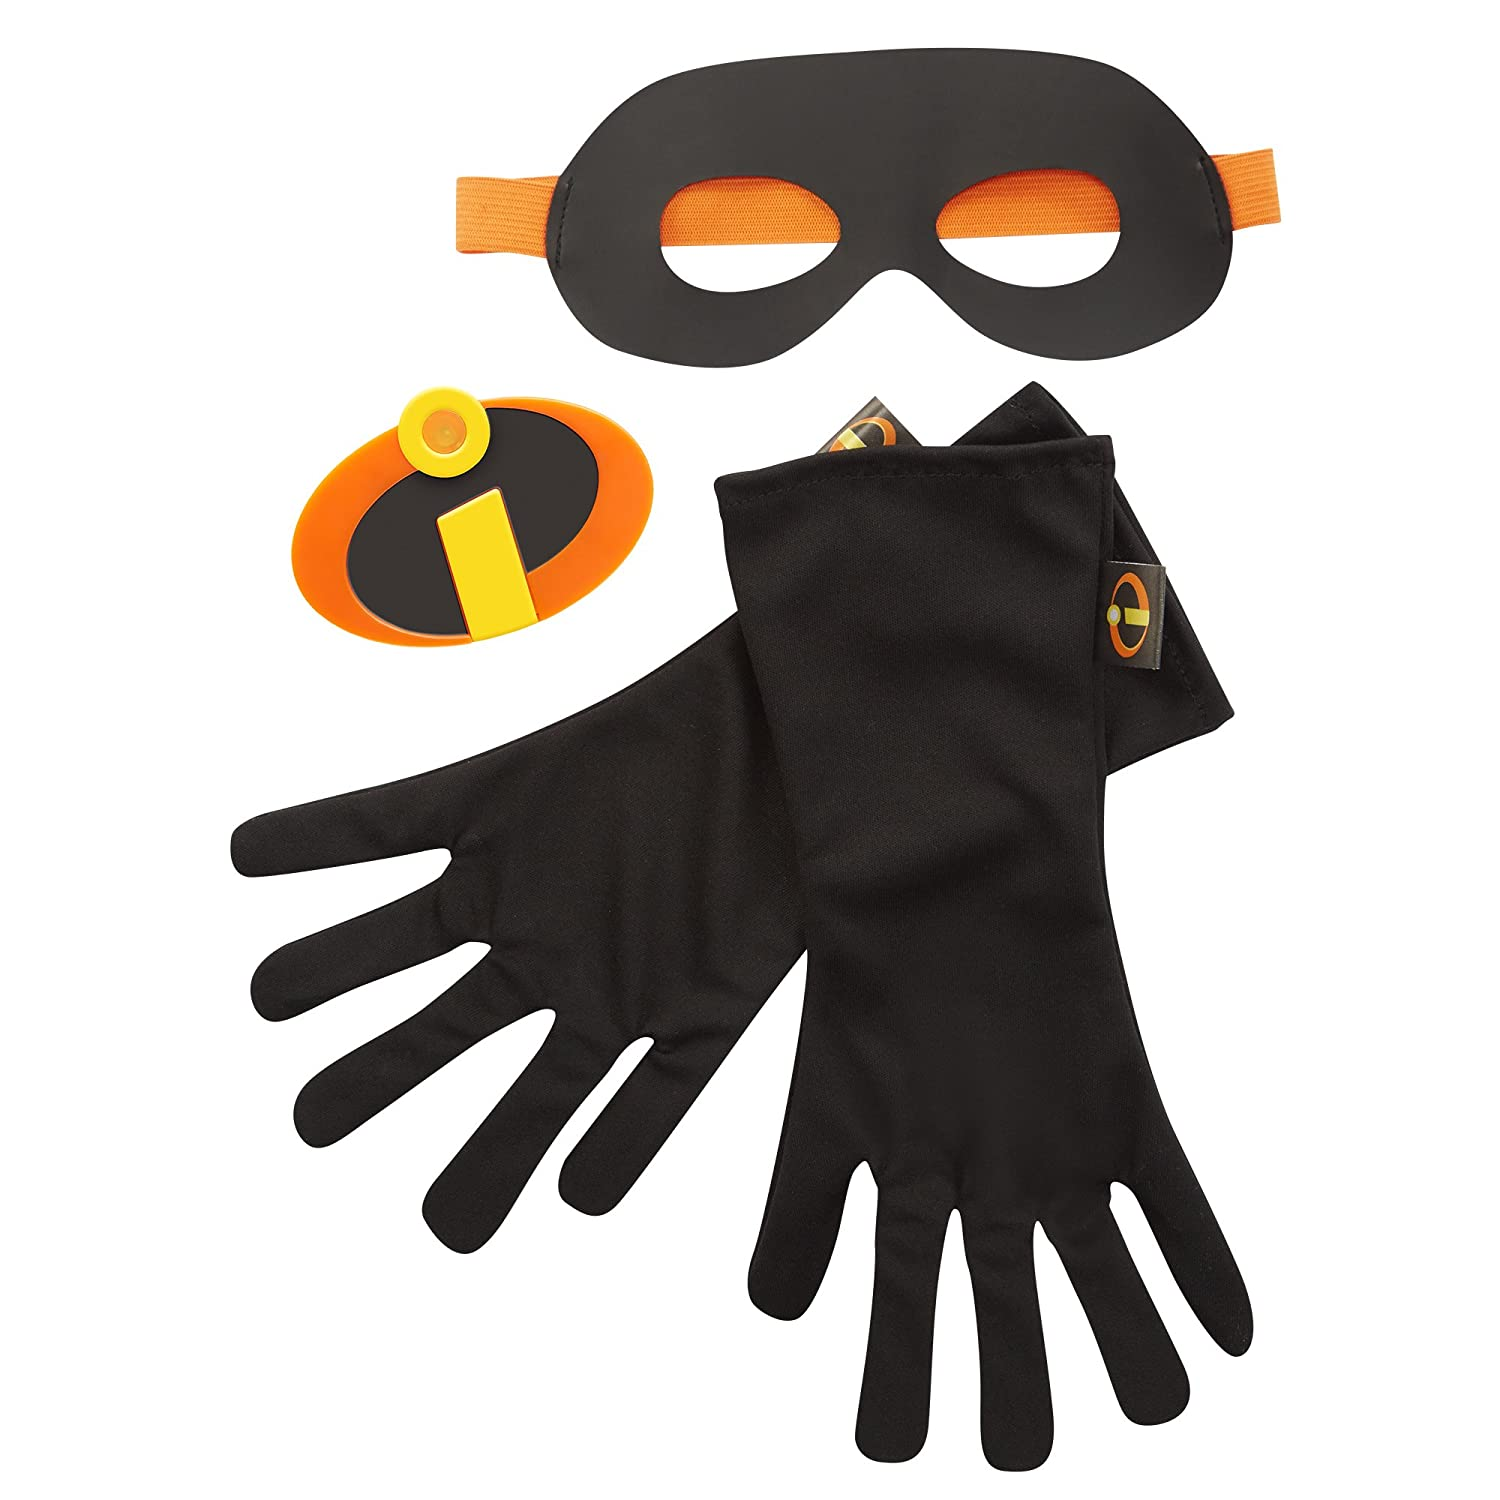 Jakks Pacific Incredibles 2 Gear Set Gloves & Lanyard Dress 3D Character Creator 74941